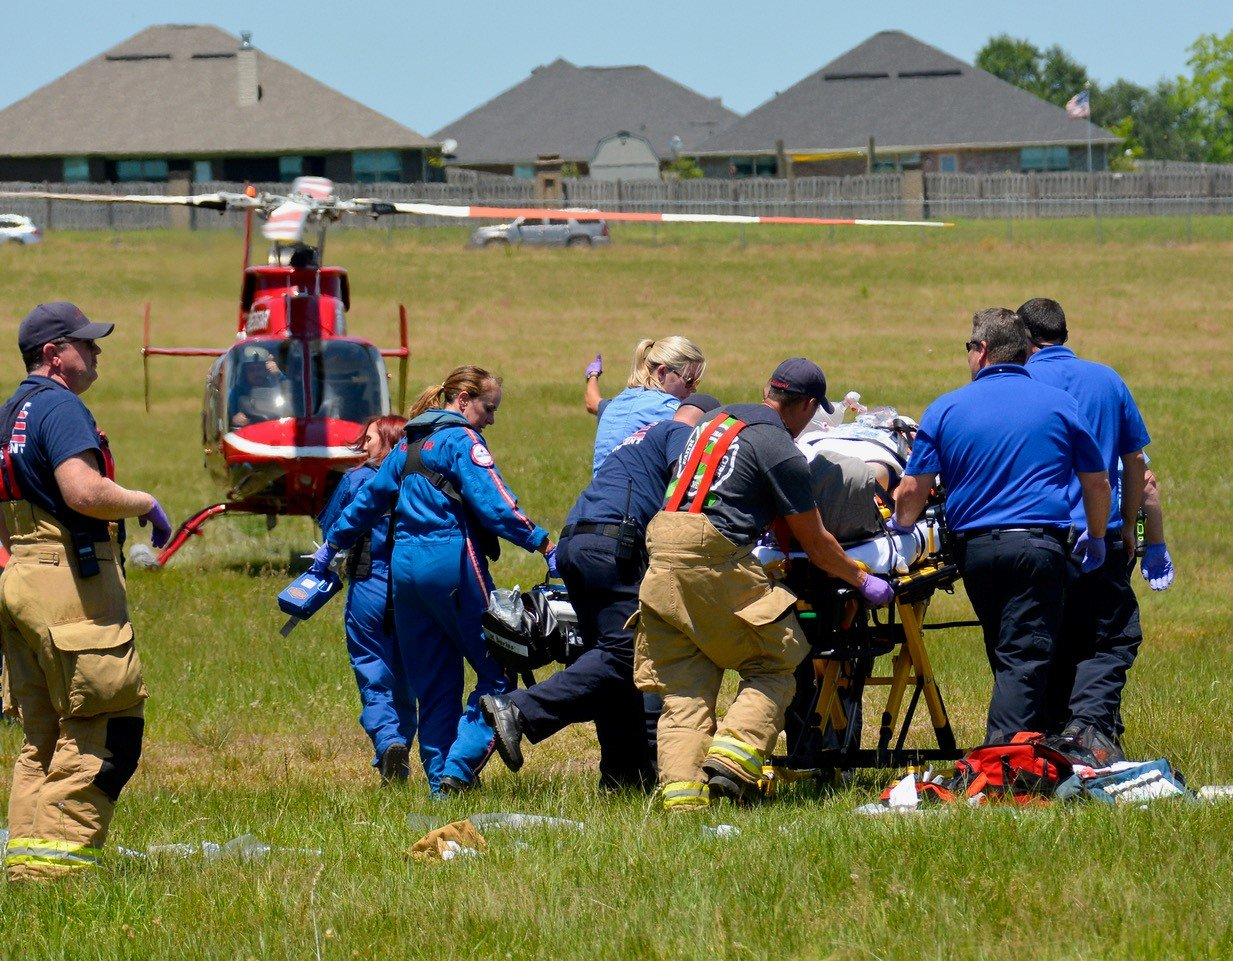 First responders take one of the injured pilots to a waiting MedStar helicopter.